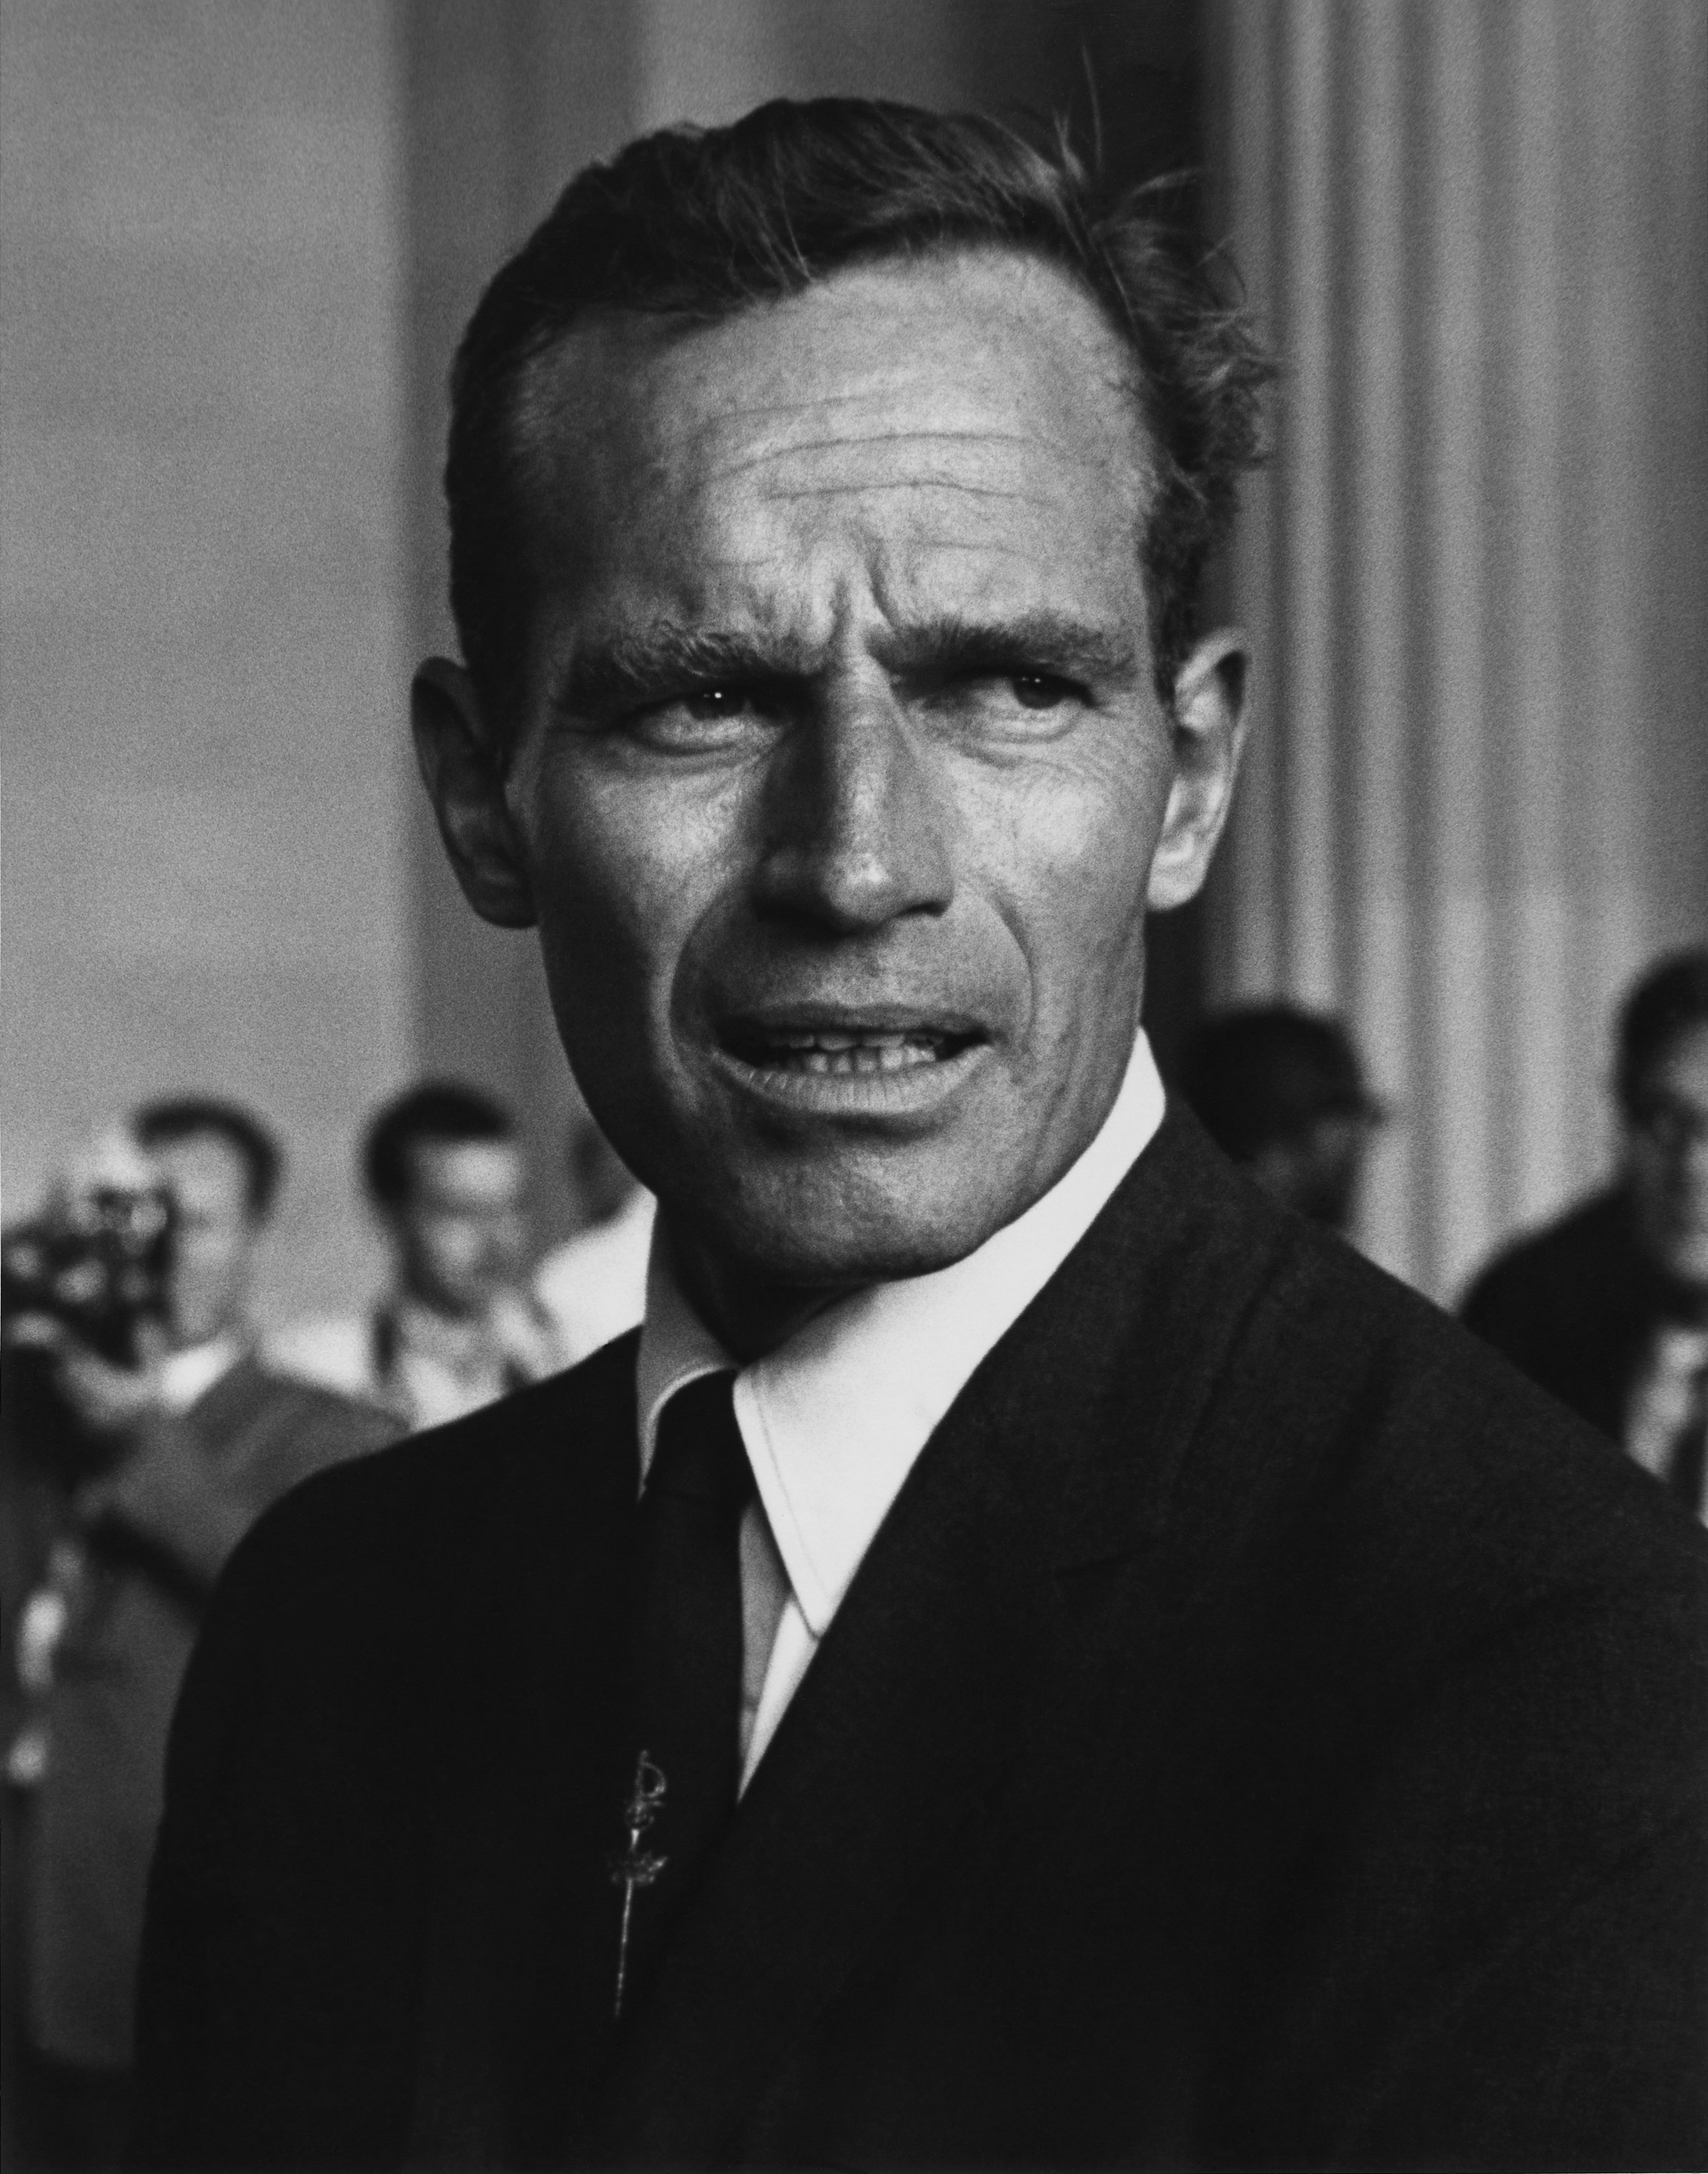 Charlton Heston at the Civil Rights March in Washington, D.C. in August 1963. | Source: Wikimedia Commons